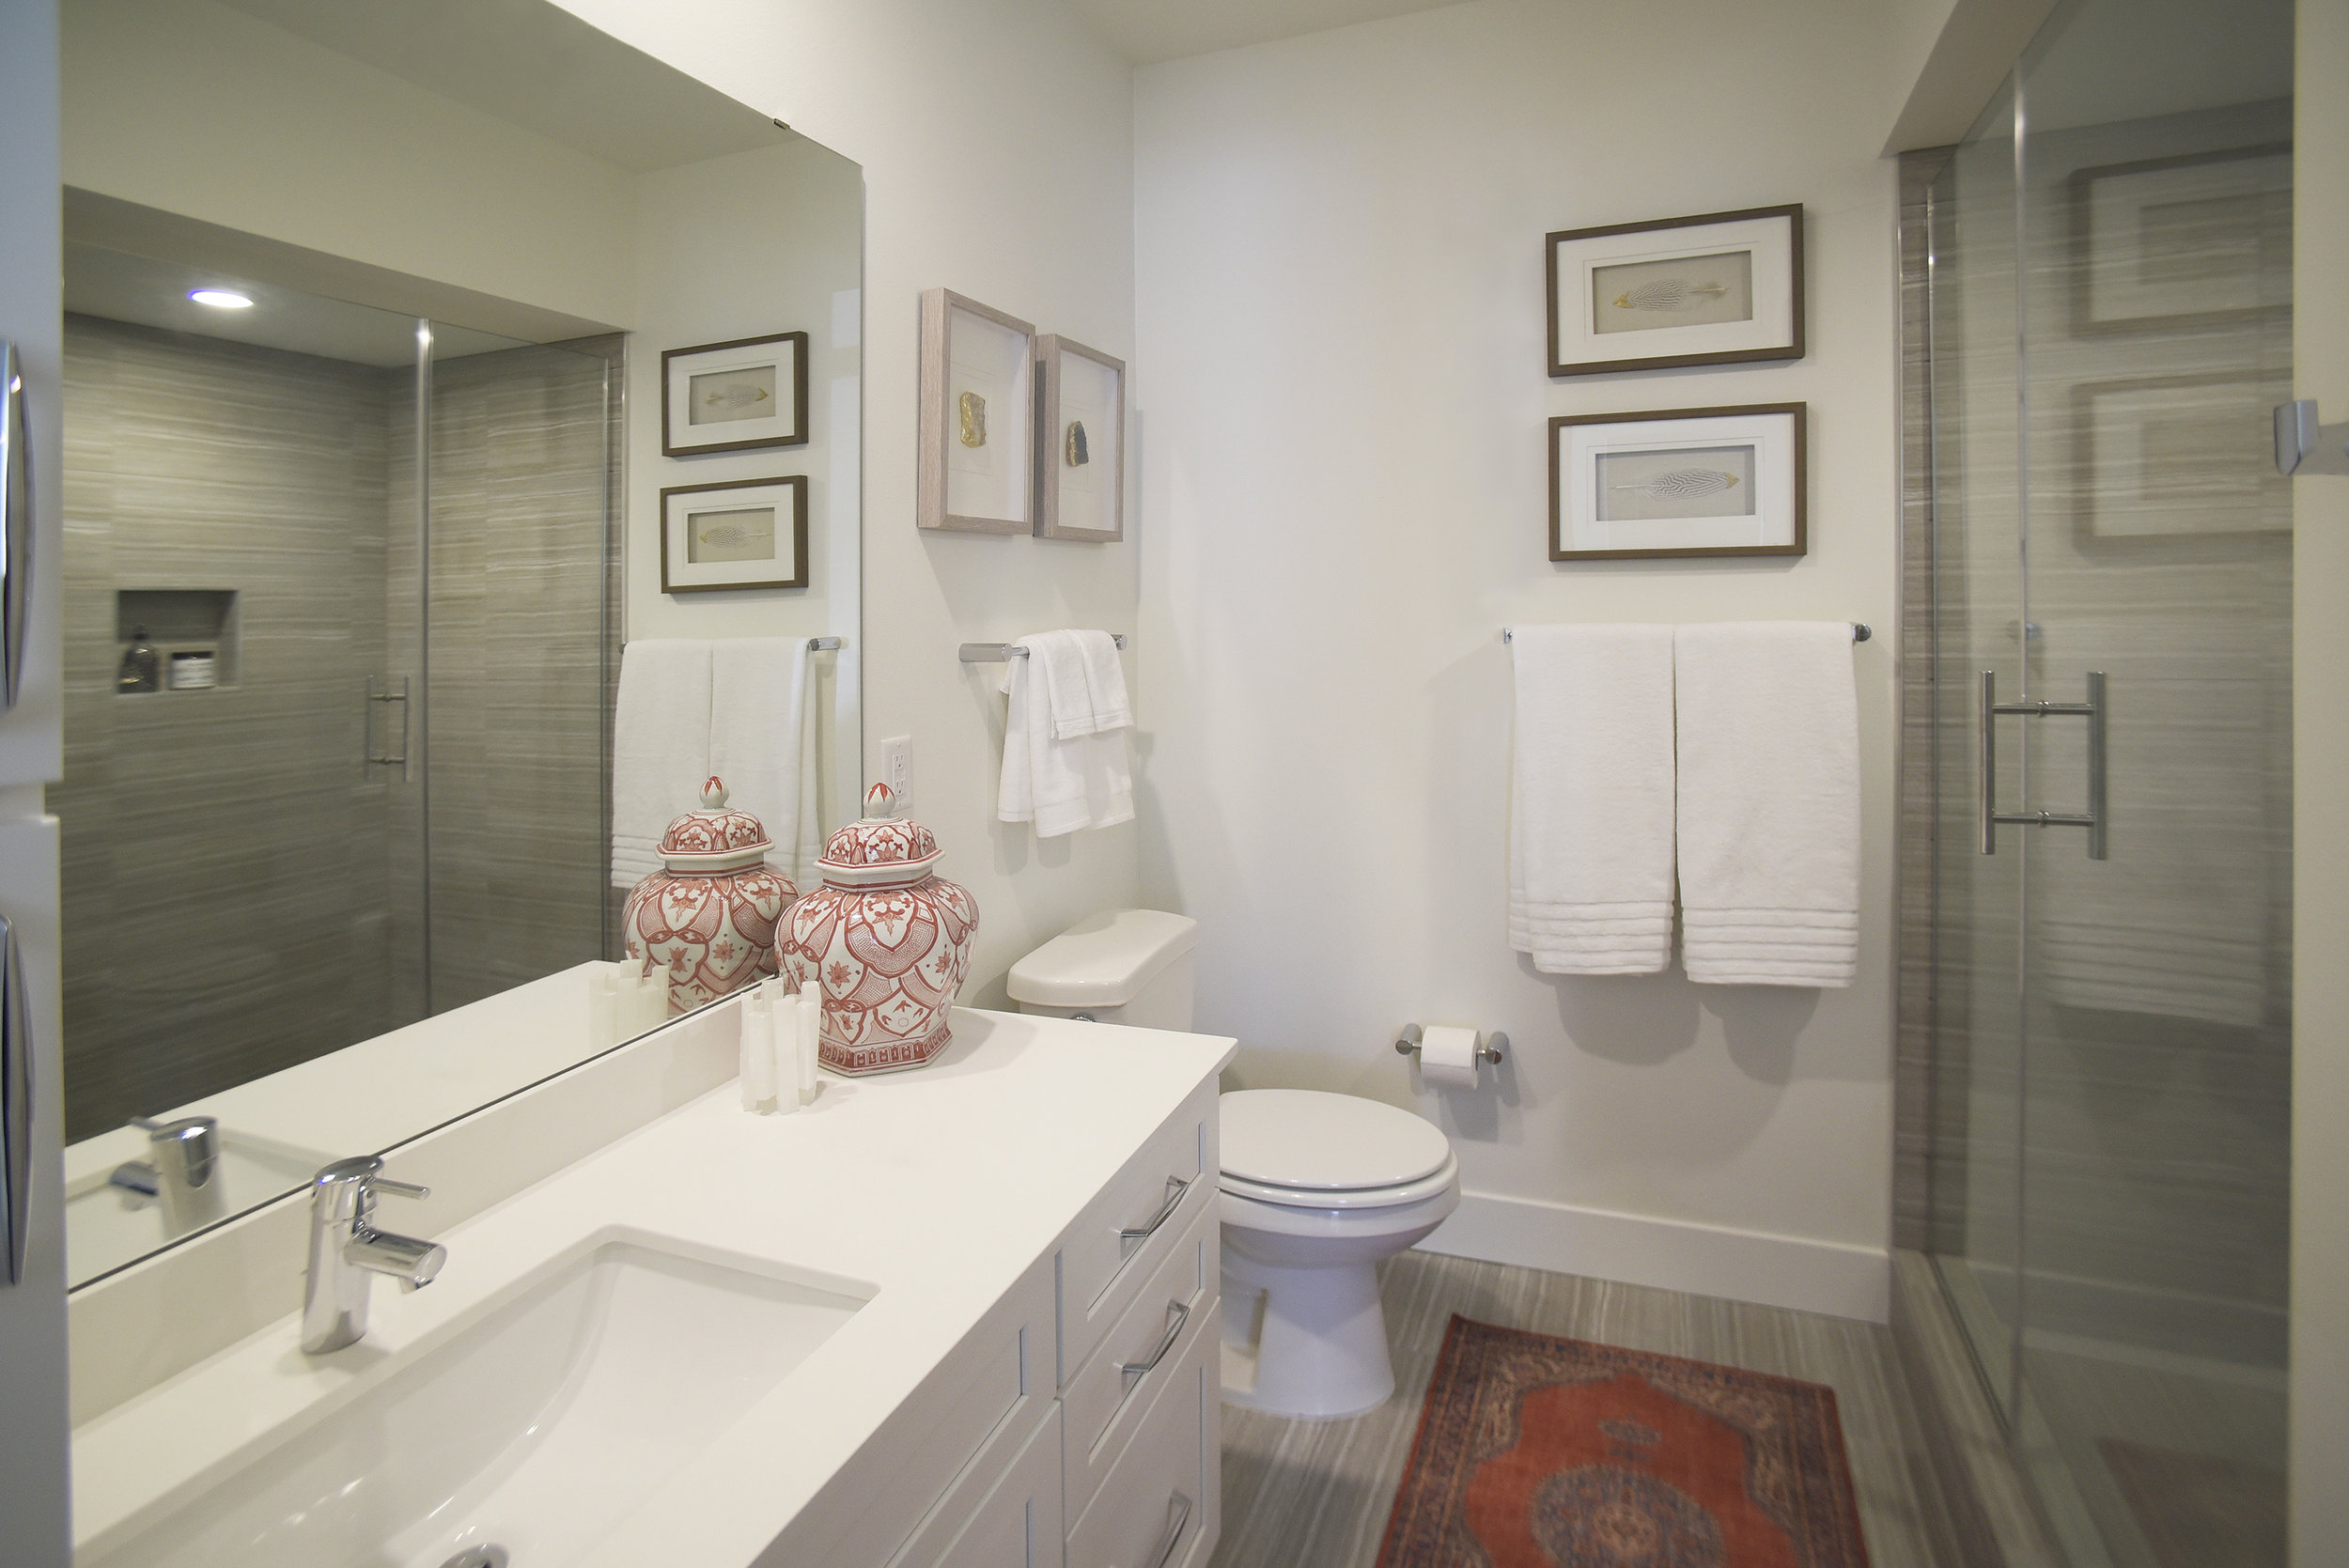 The bathrooms include heated floors. Each townhome features two full baths and a powder room.